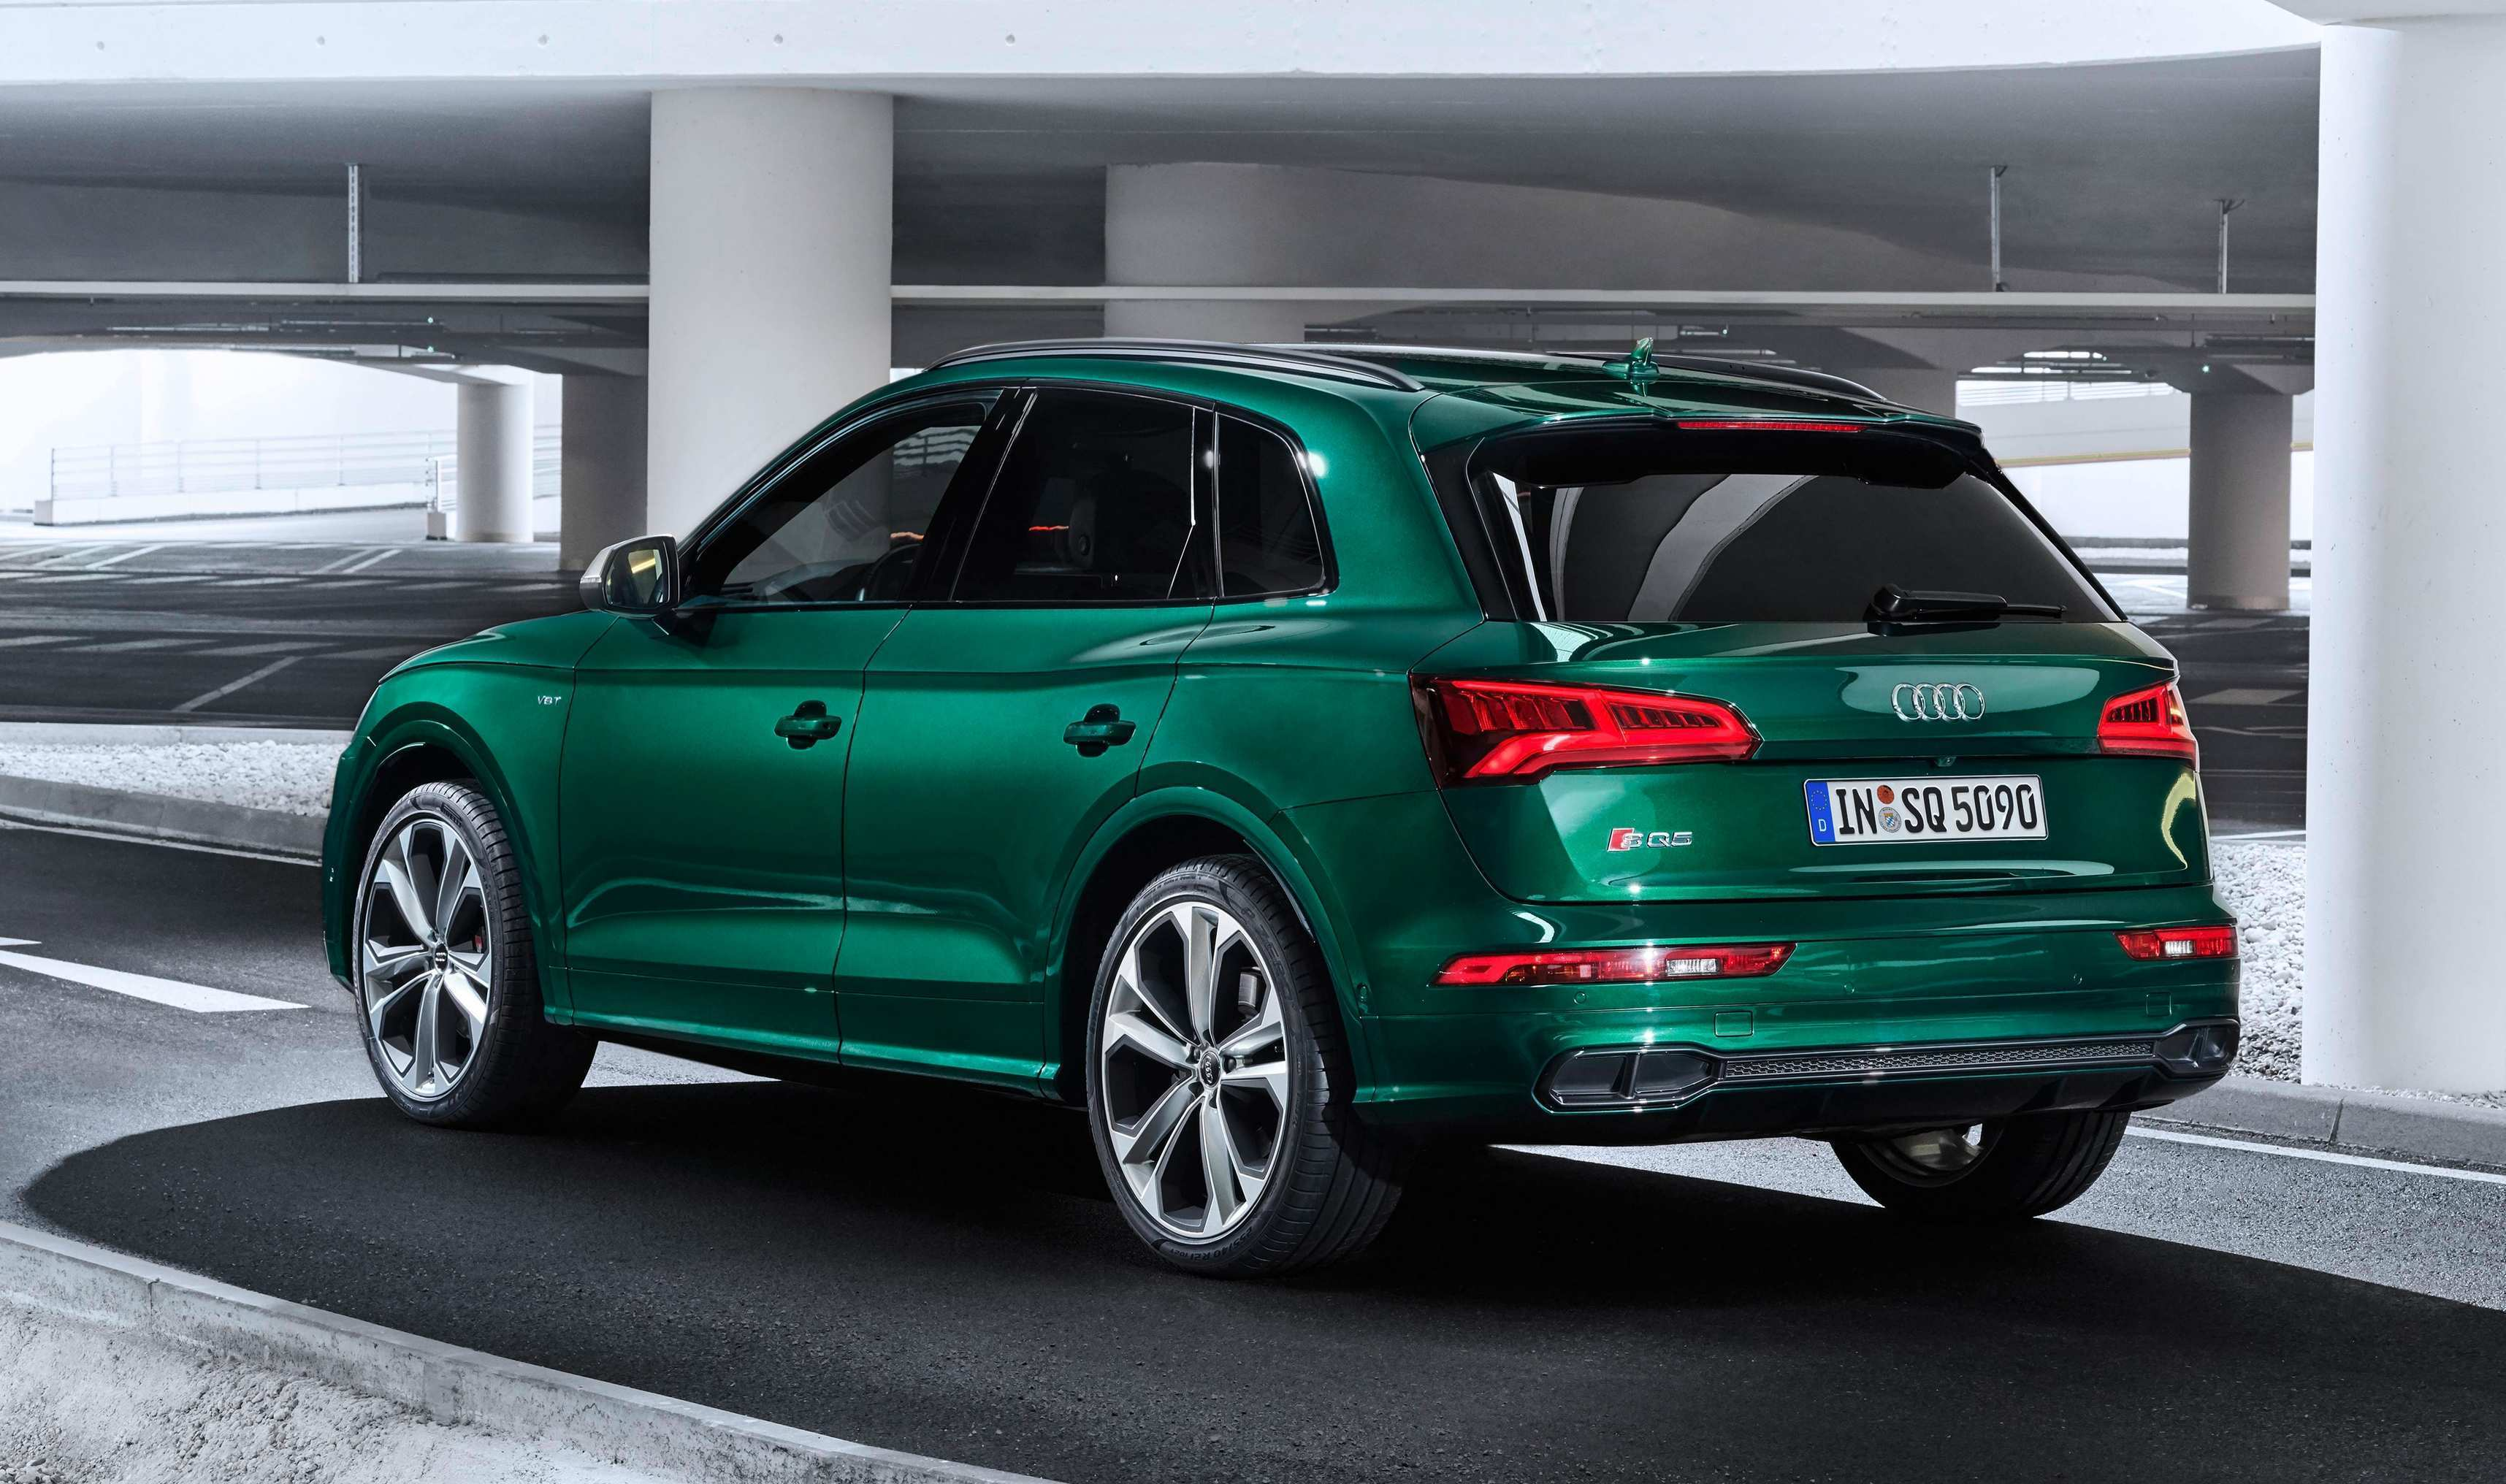 24 New New Sq5 Audi 2019 Picture Engine with New Sq5 Audi 2019 Picture